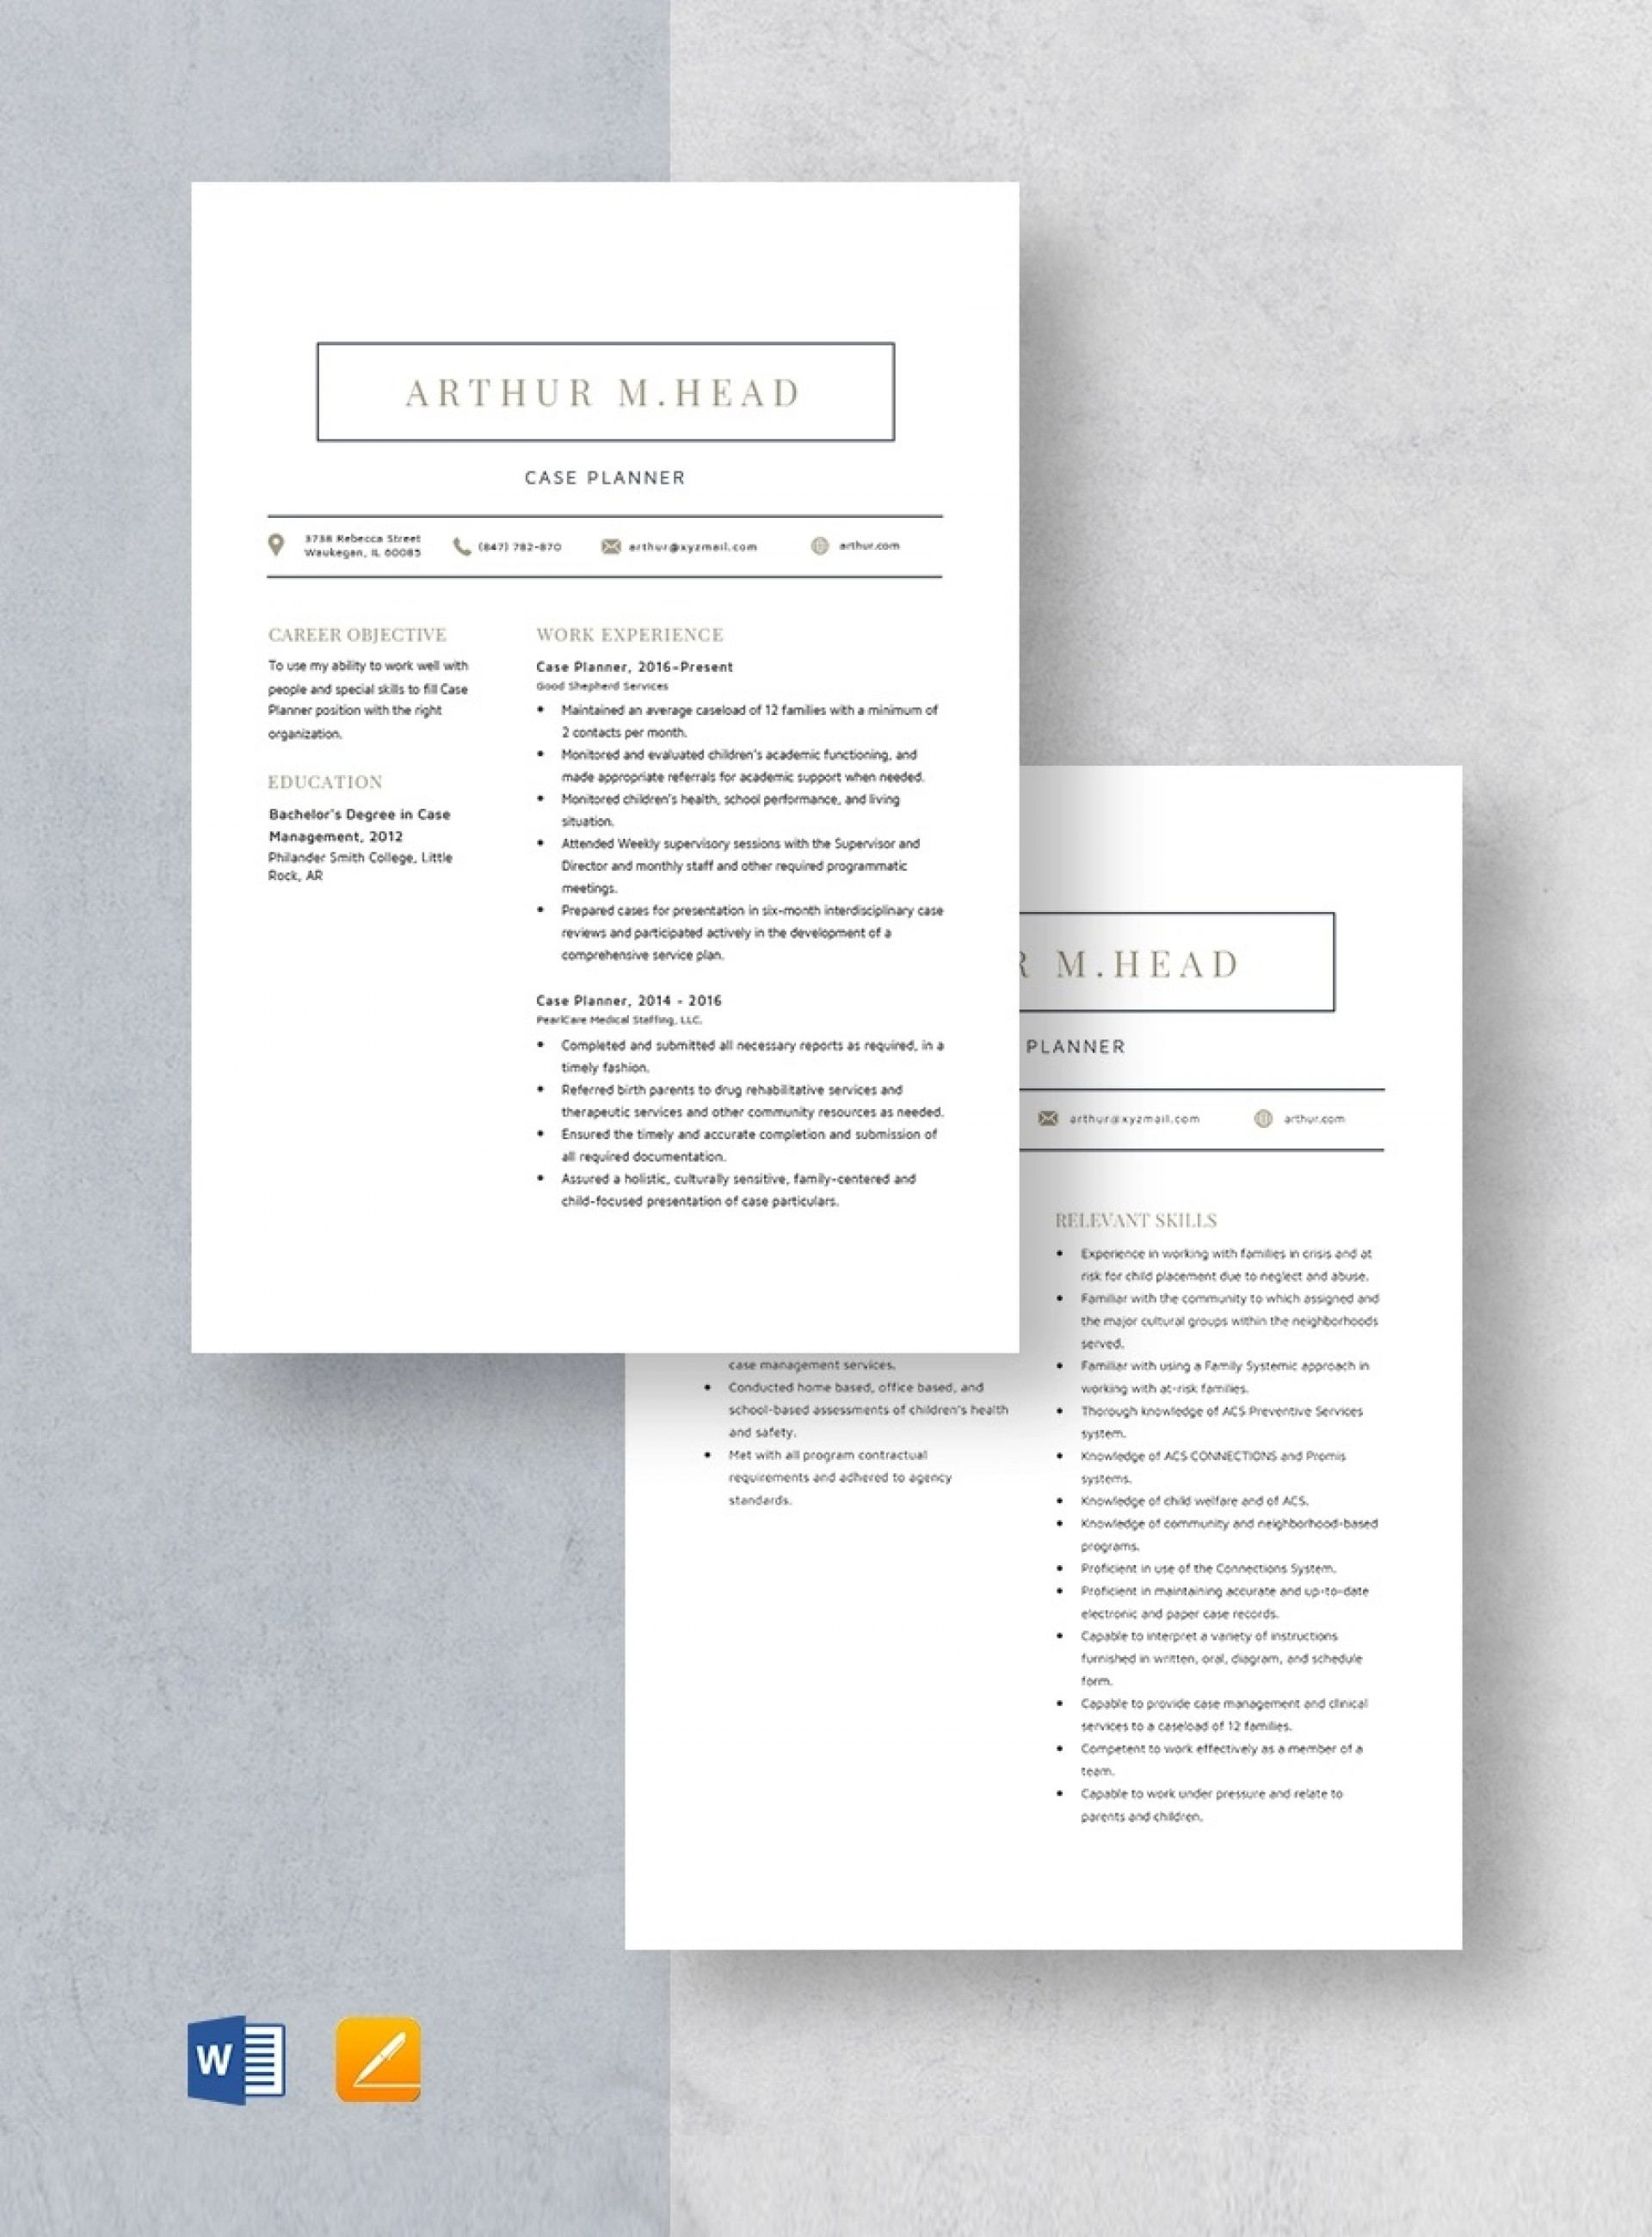 Template Case Planner Resume 1920